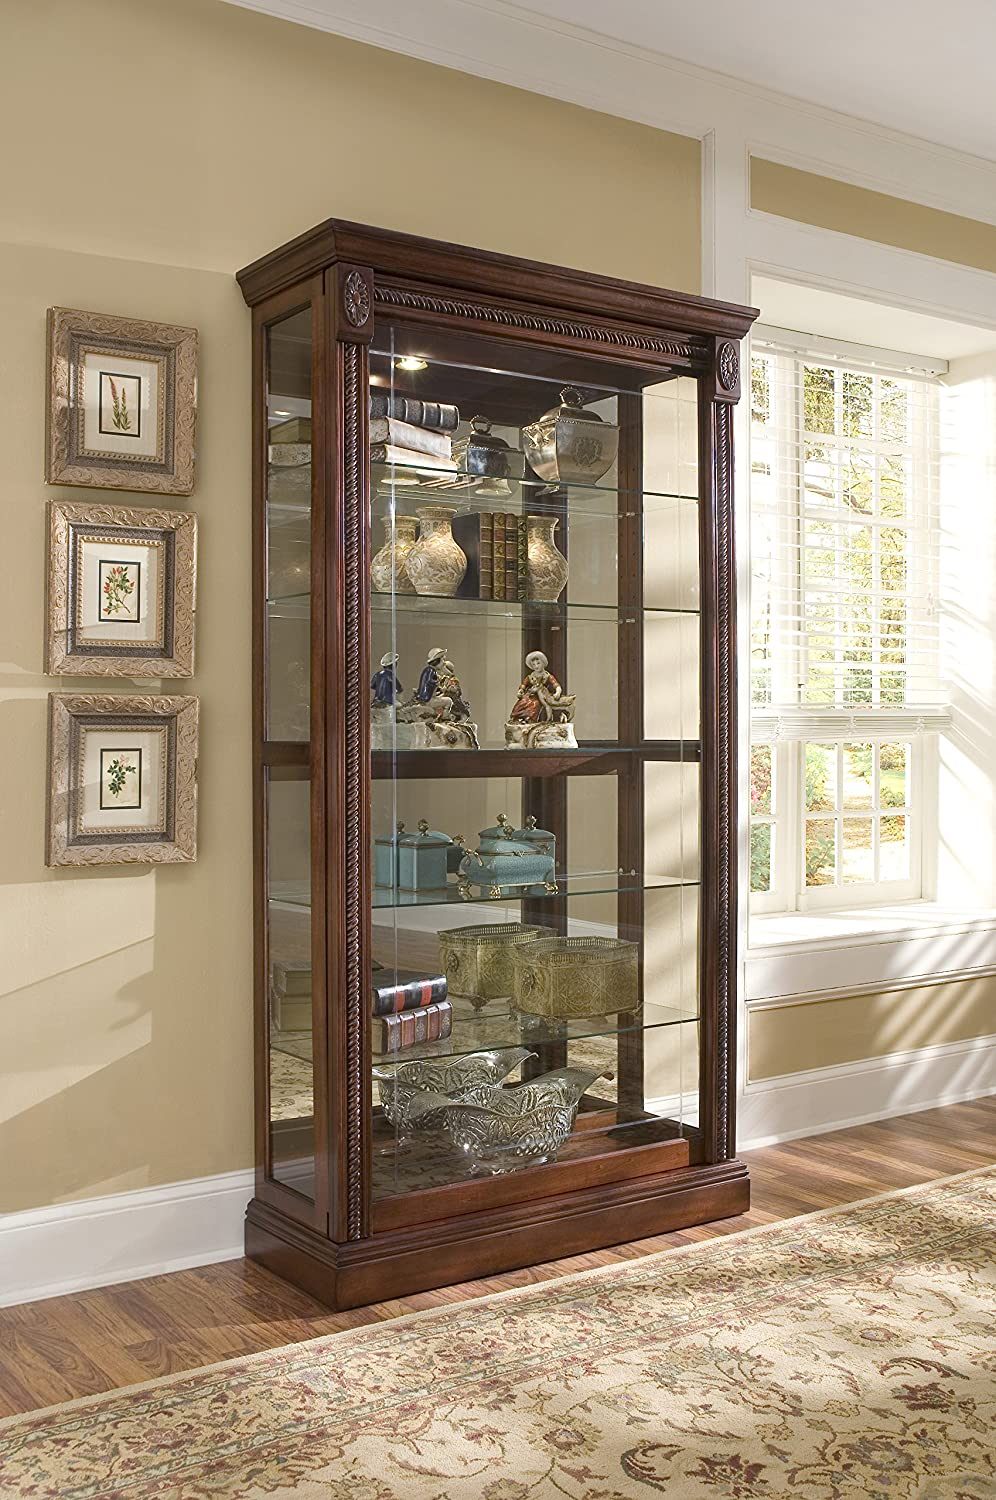 Amazon.com Pulaski Two Way Sliding Door Curio 43 by 17 by 80-Inch Medallion Cherry Finish Brown Kitchen u0026 Dining & Amazon.com: Pulaski Two Way Sliding Door Curio 43 by 17 by 80 ... pezcame.com